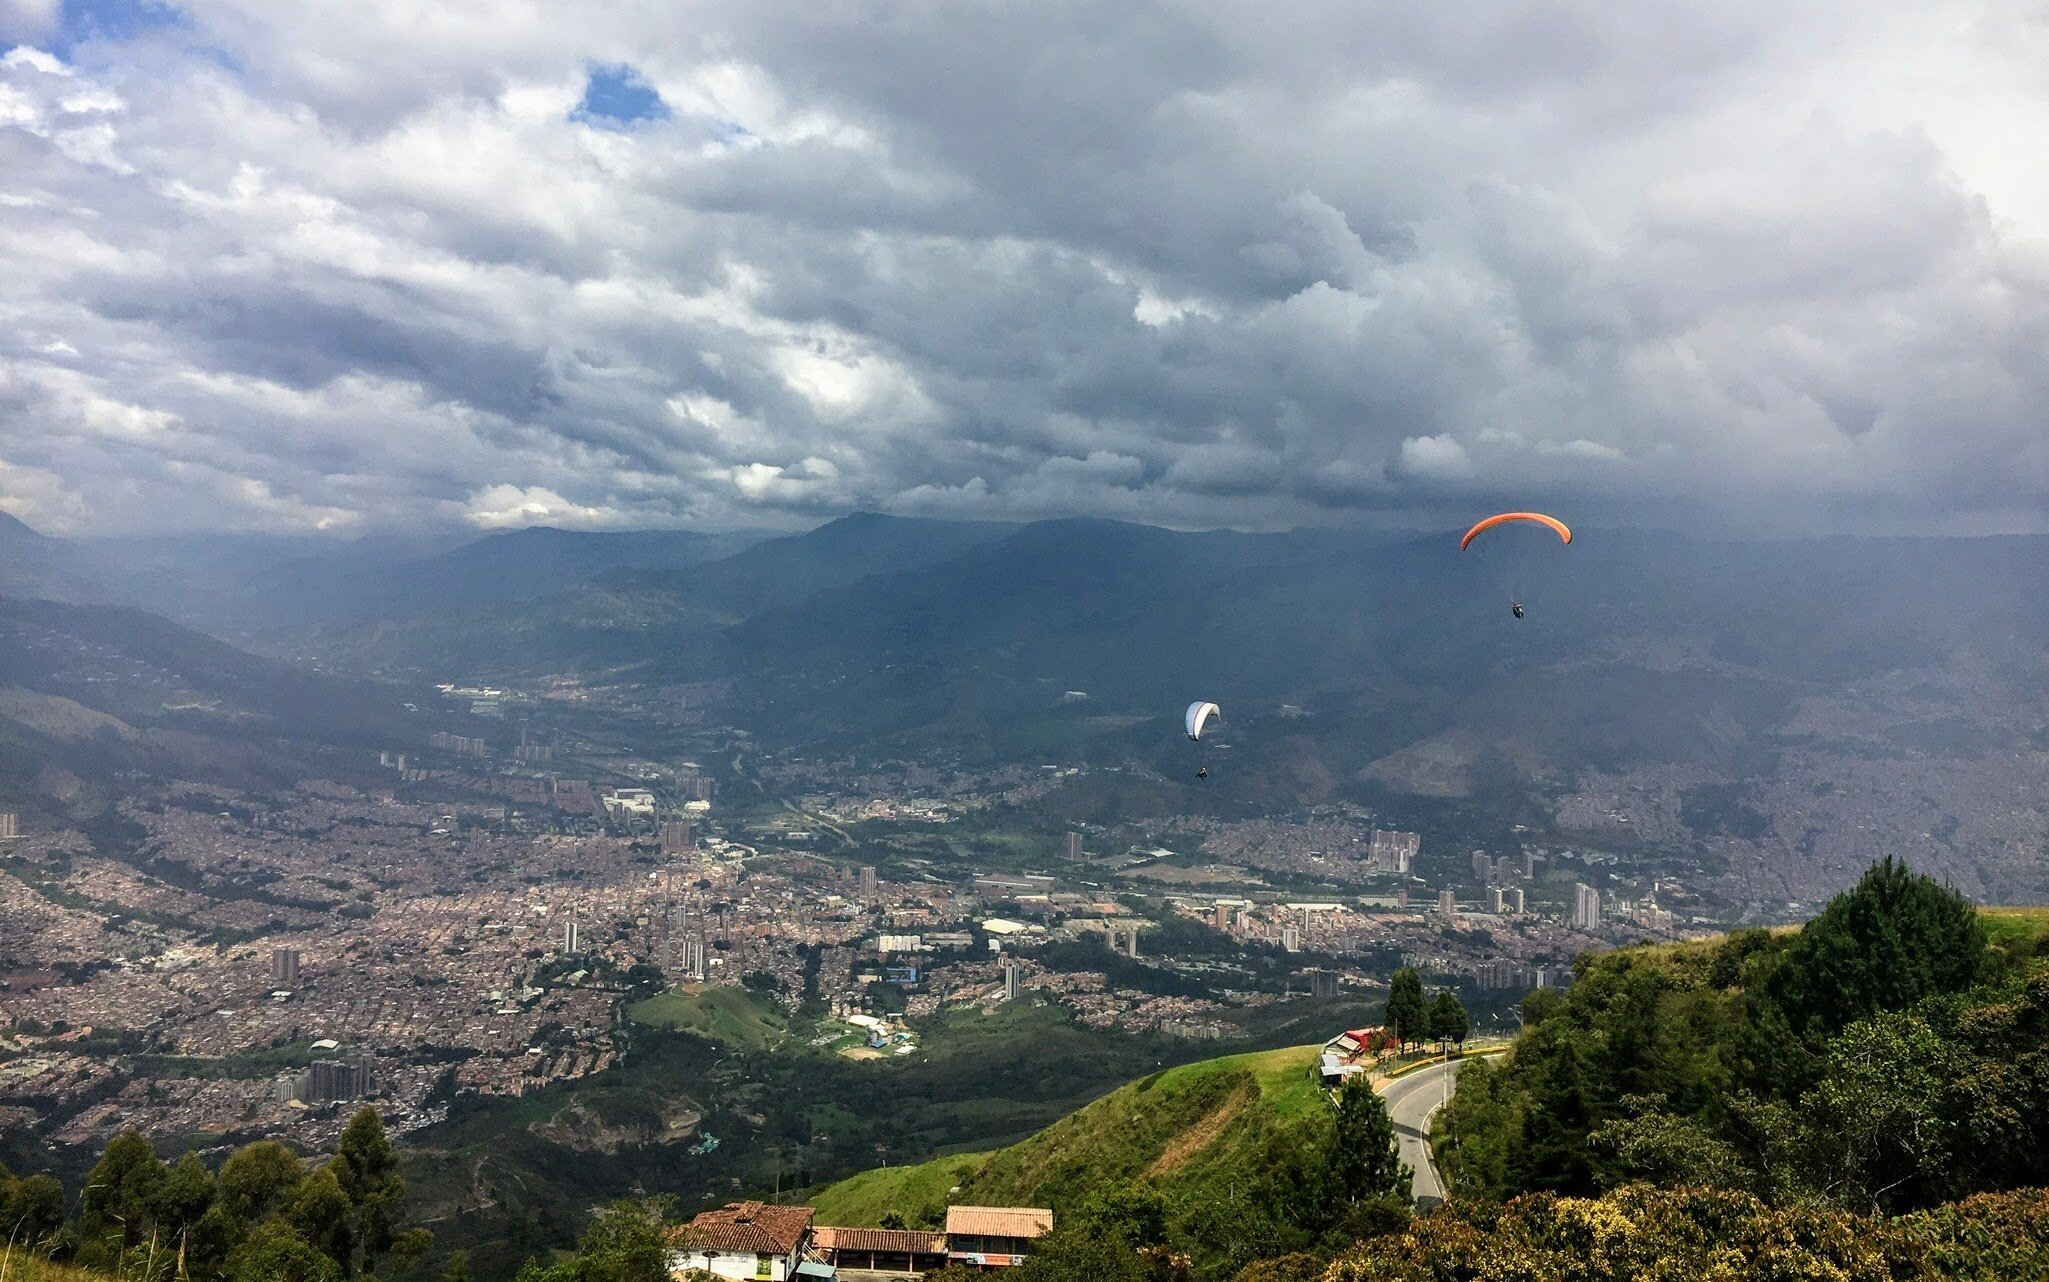 Paragliding is a popular thing to do in Medellin